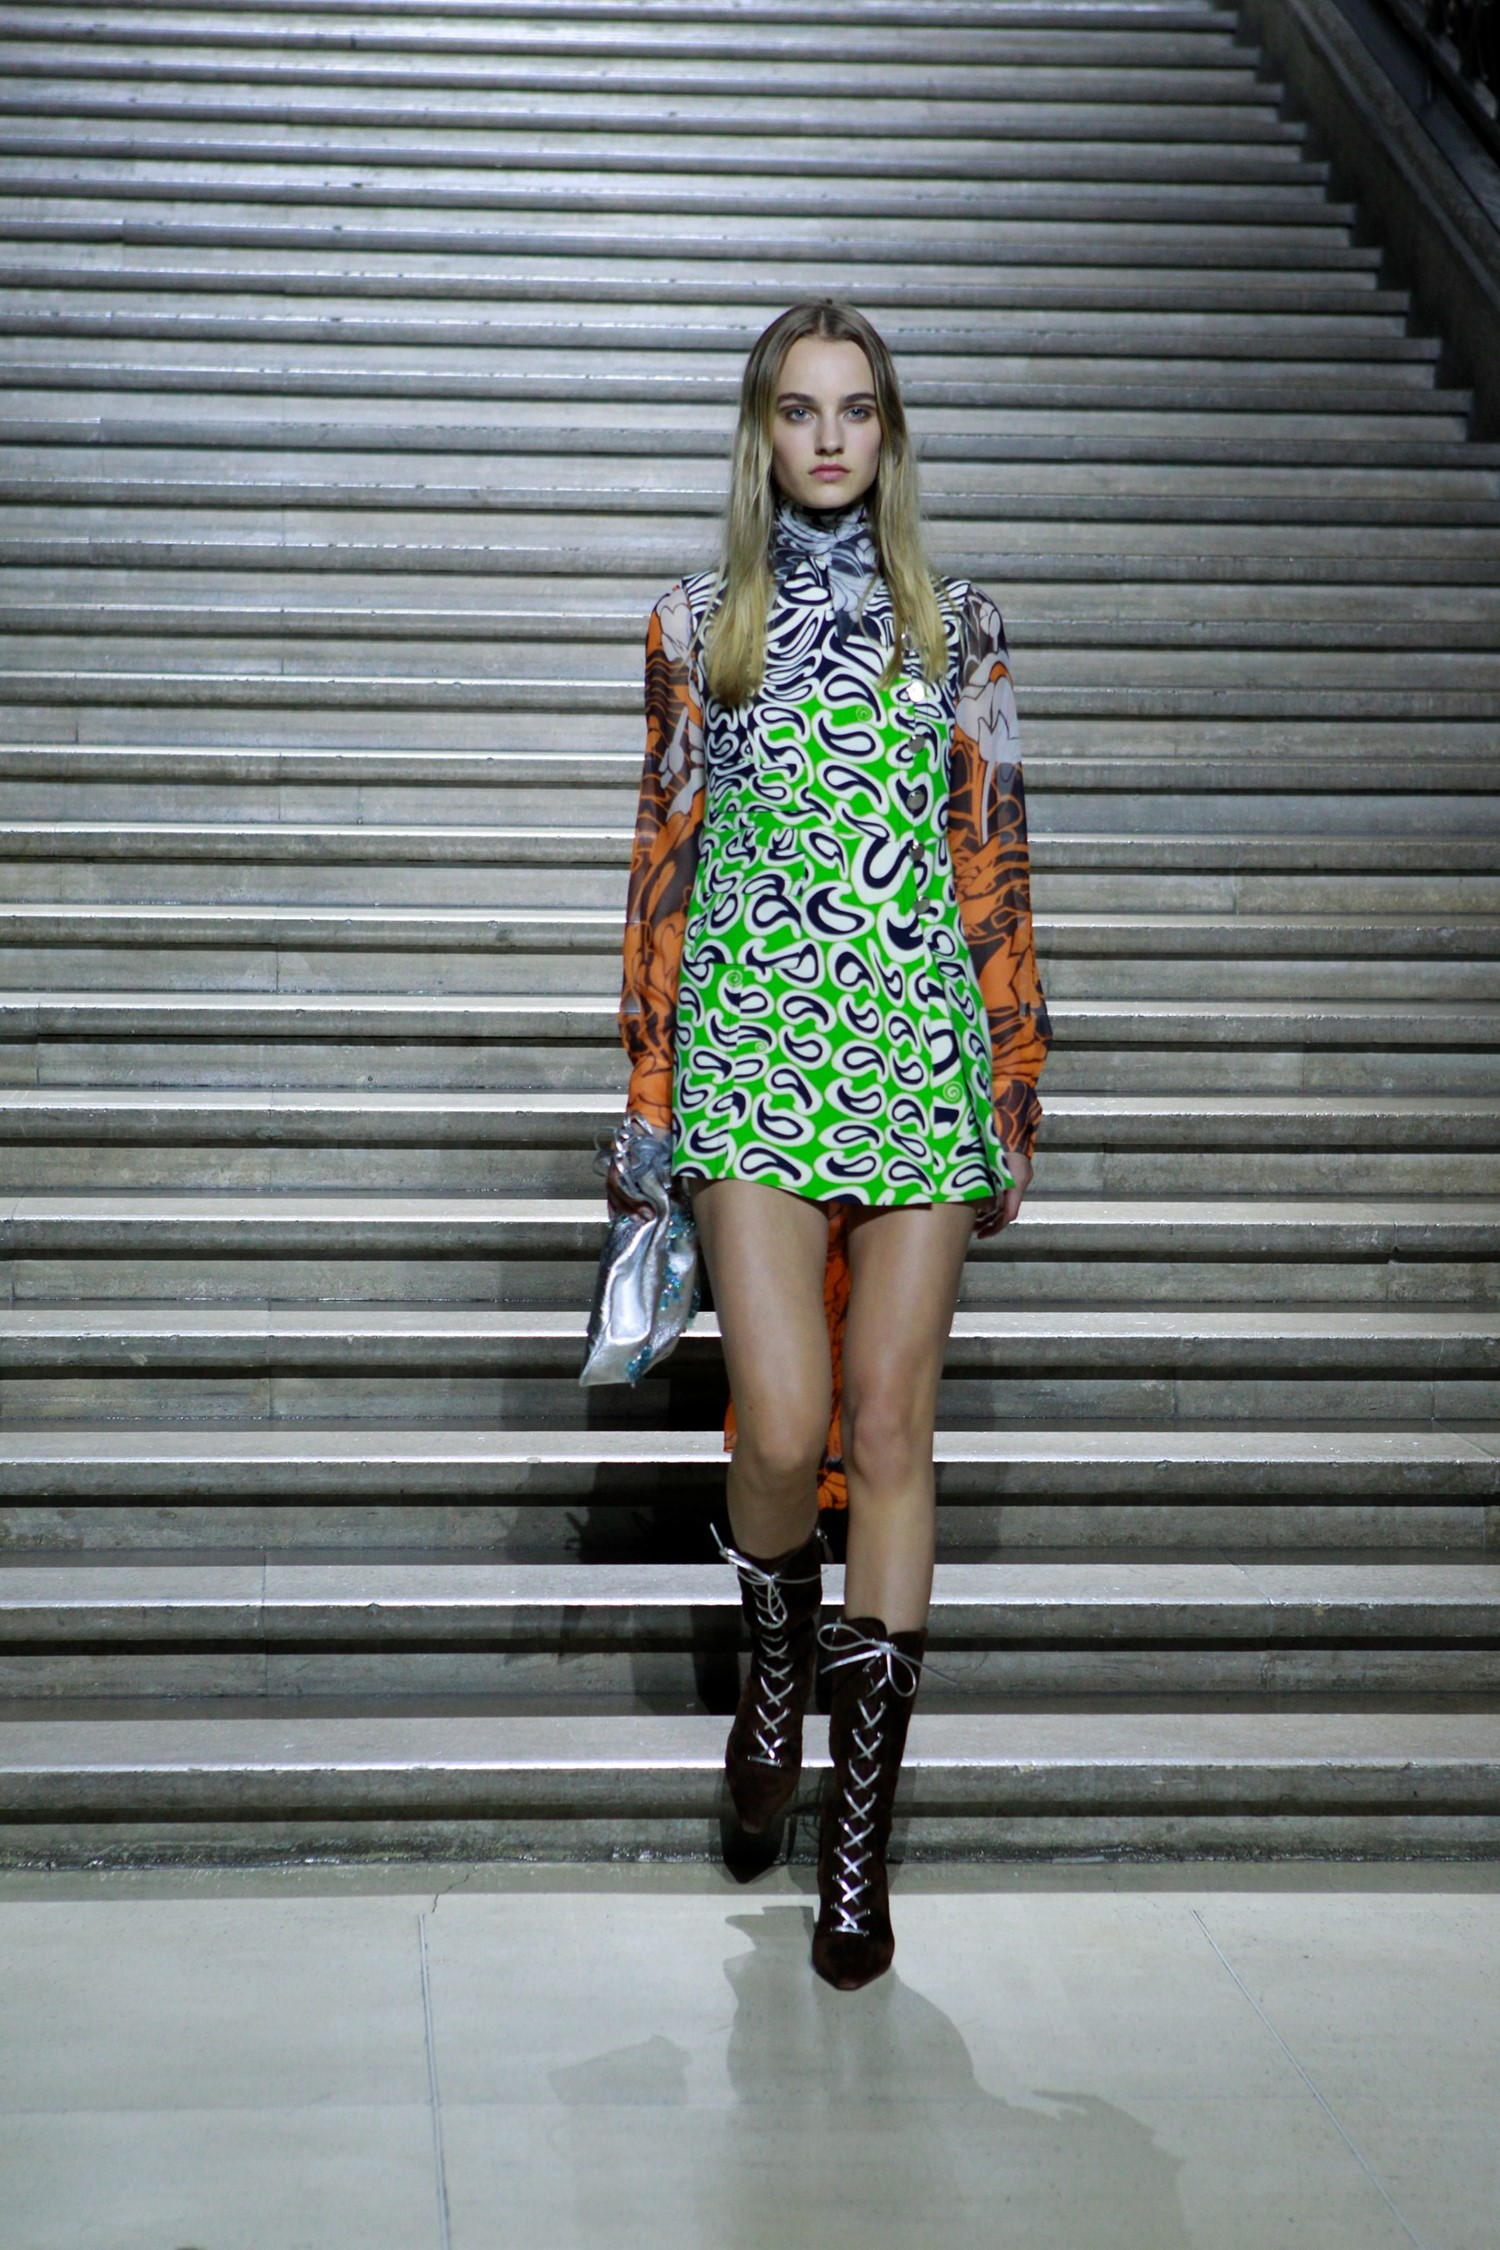 Miu Miu Cruise 2015 Dazed Susie Bubble